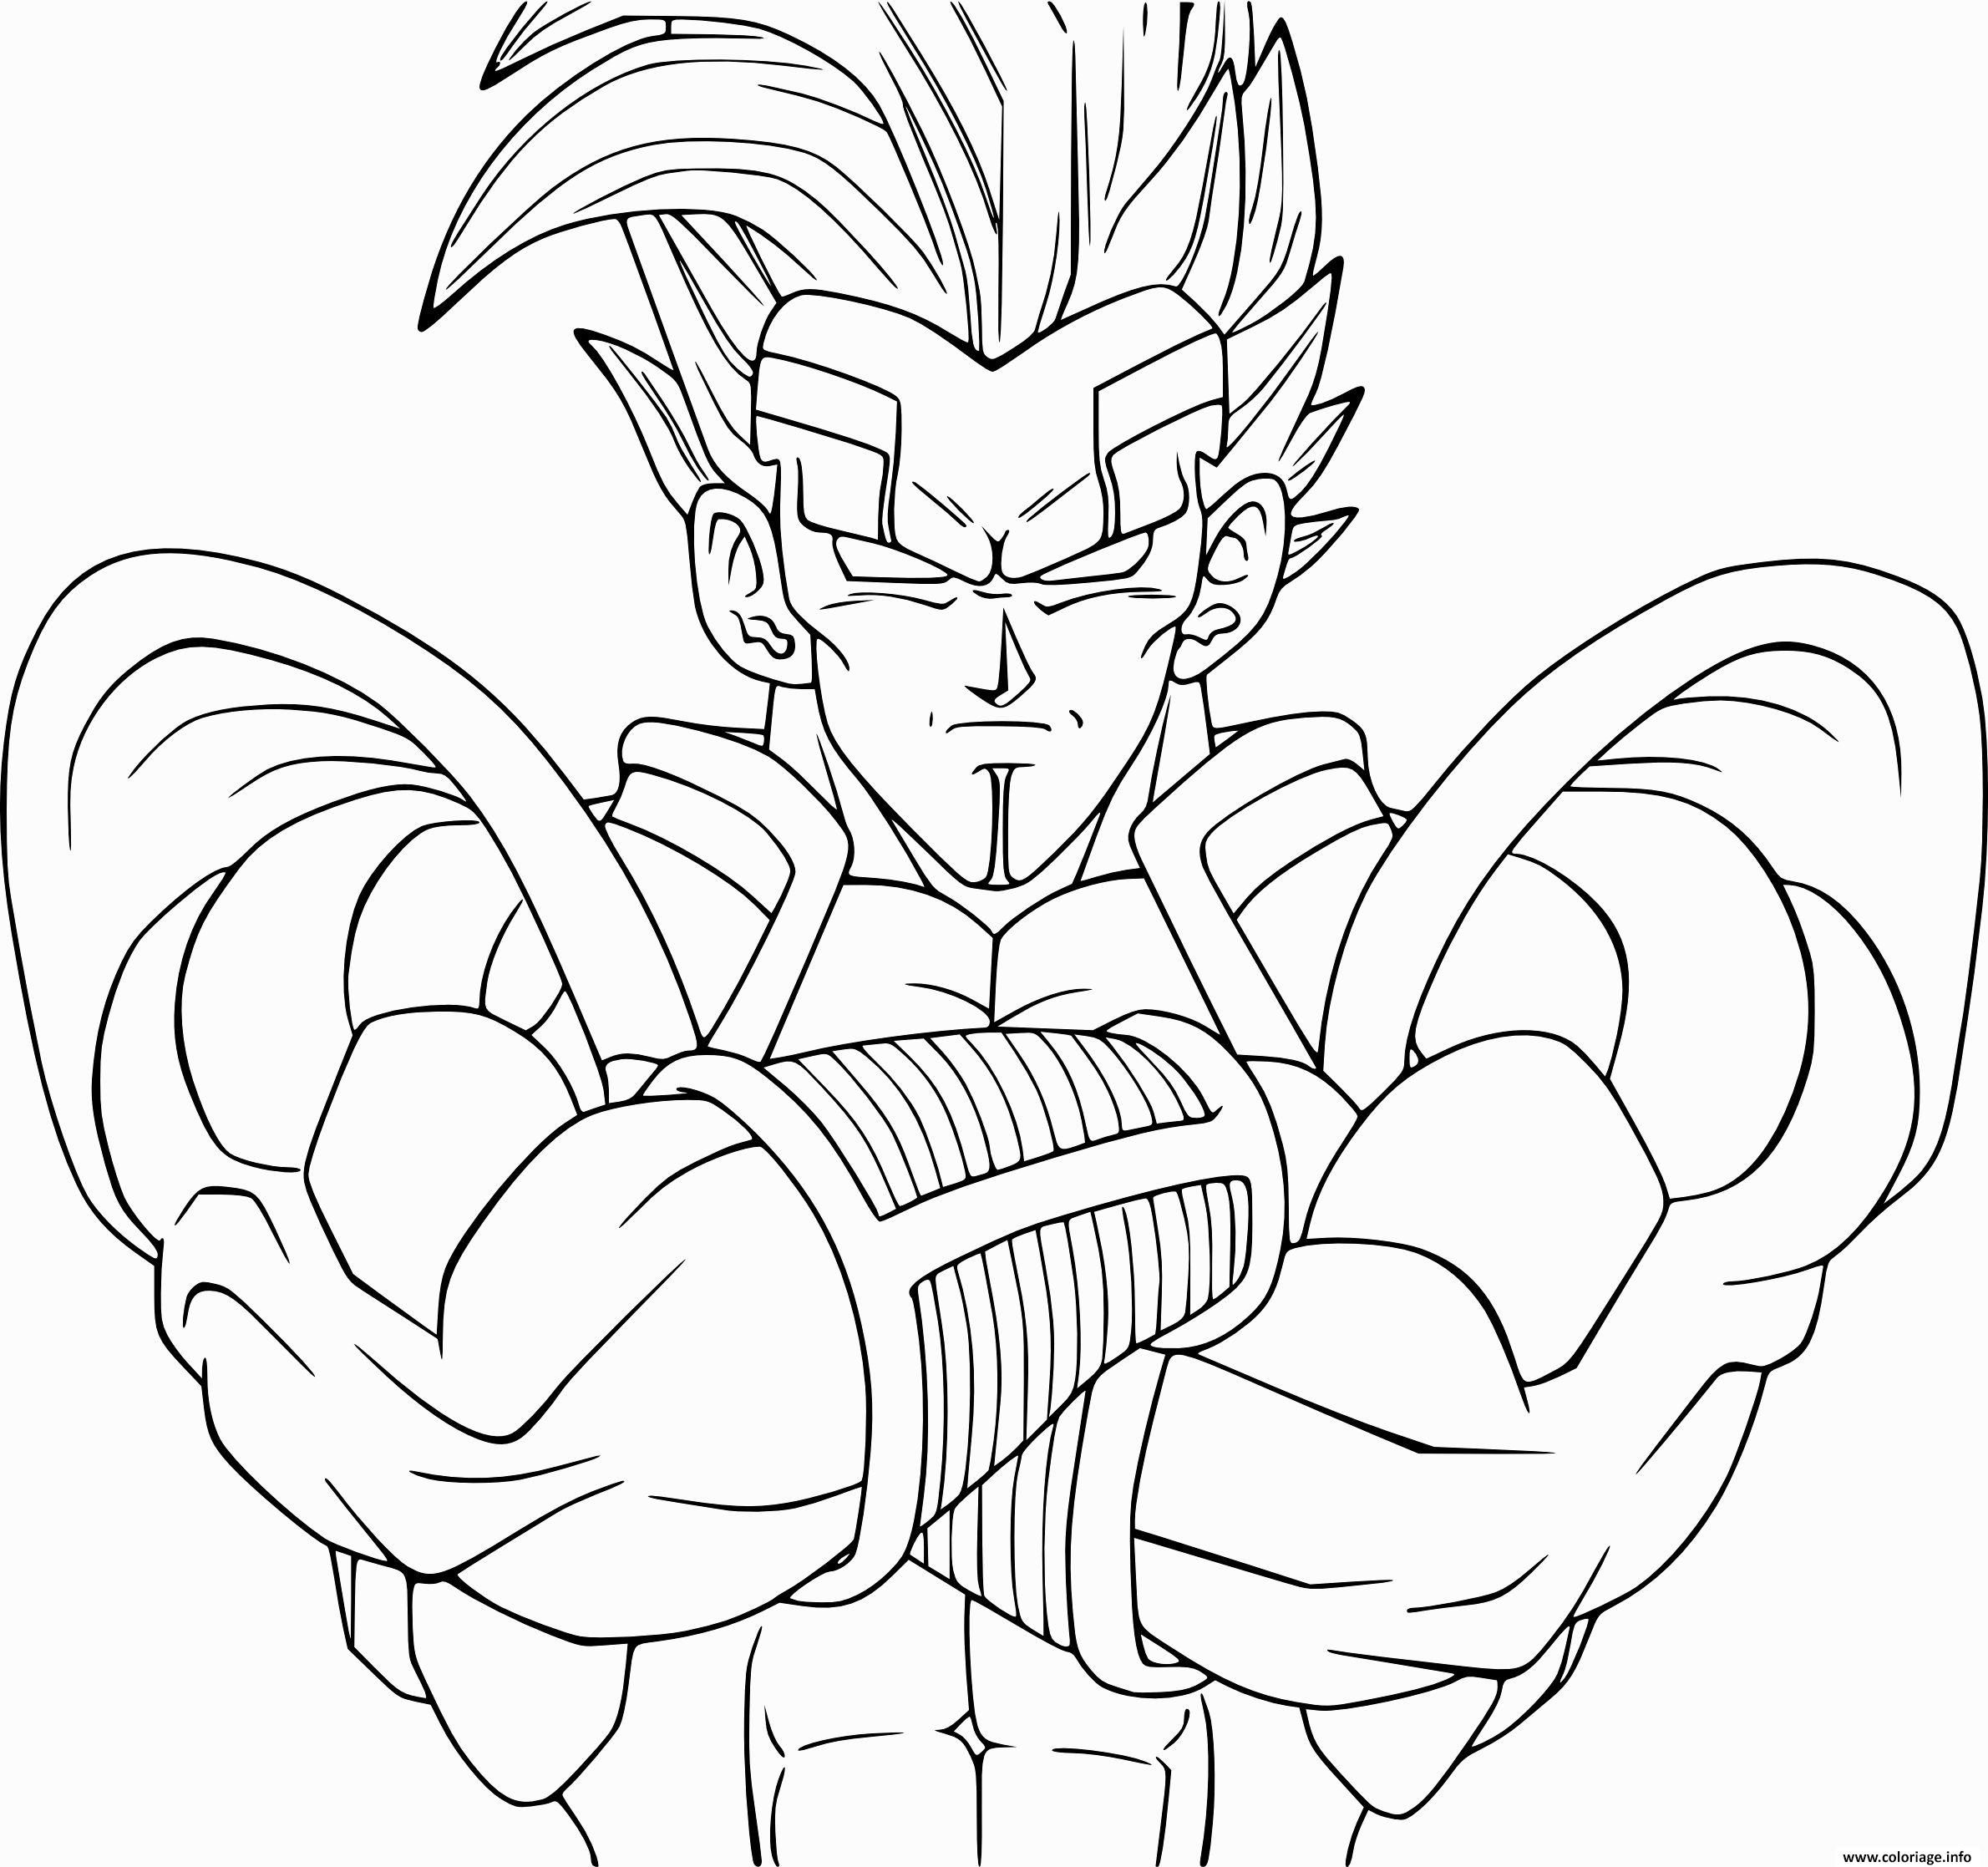 Coloriage unique dragon ball z vegeta - Dessin de dragon ball za imprimer ...